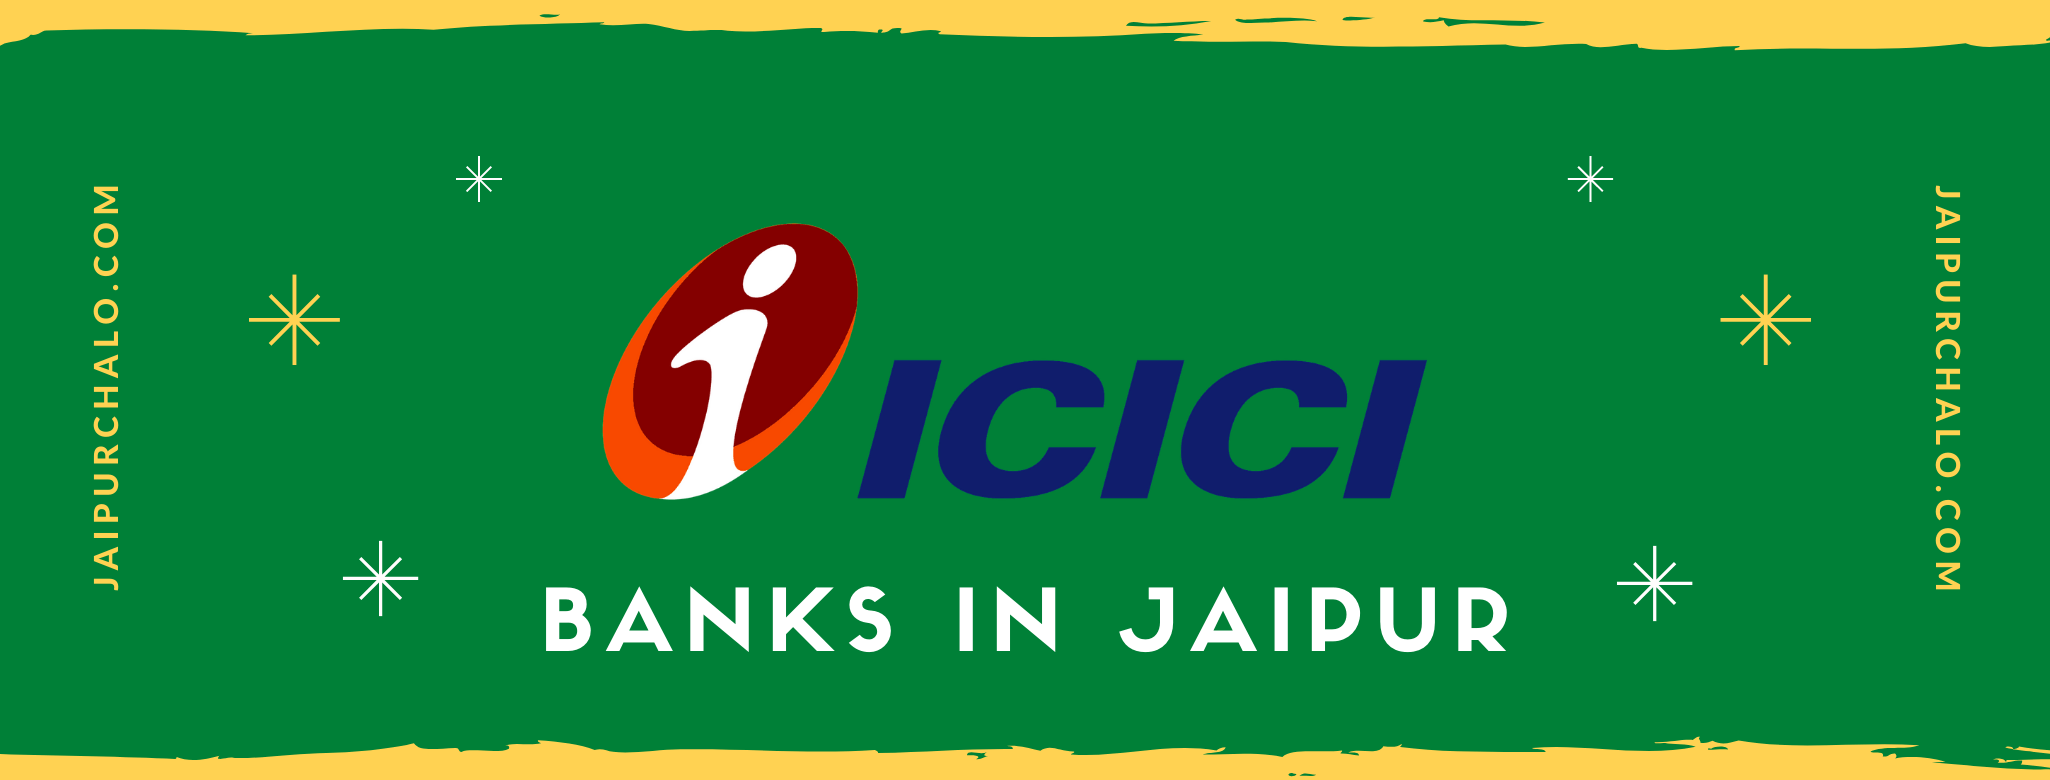 Branches of ICICI bank in jaipur